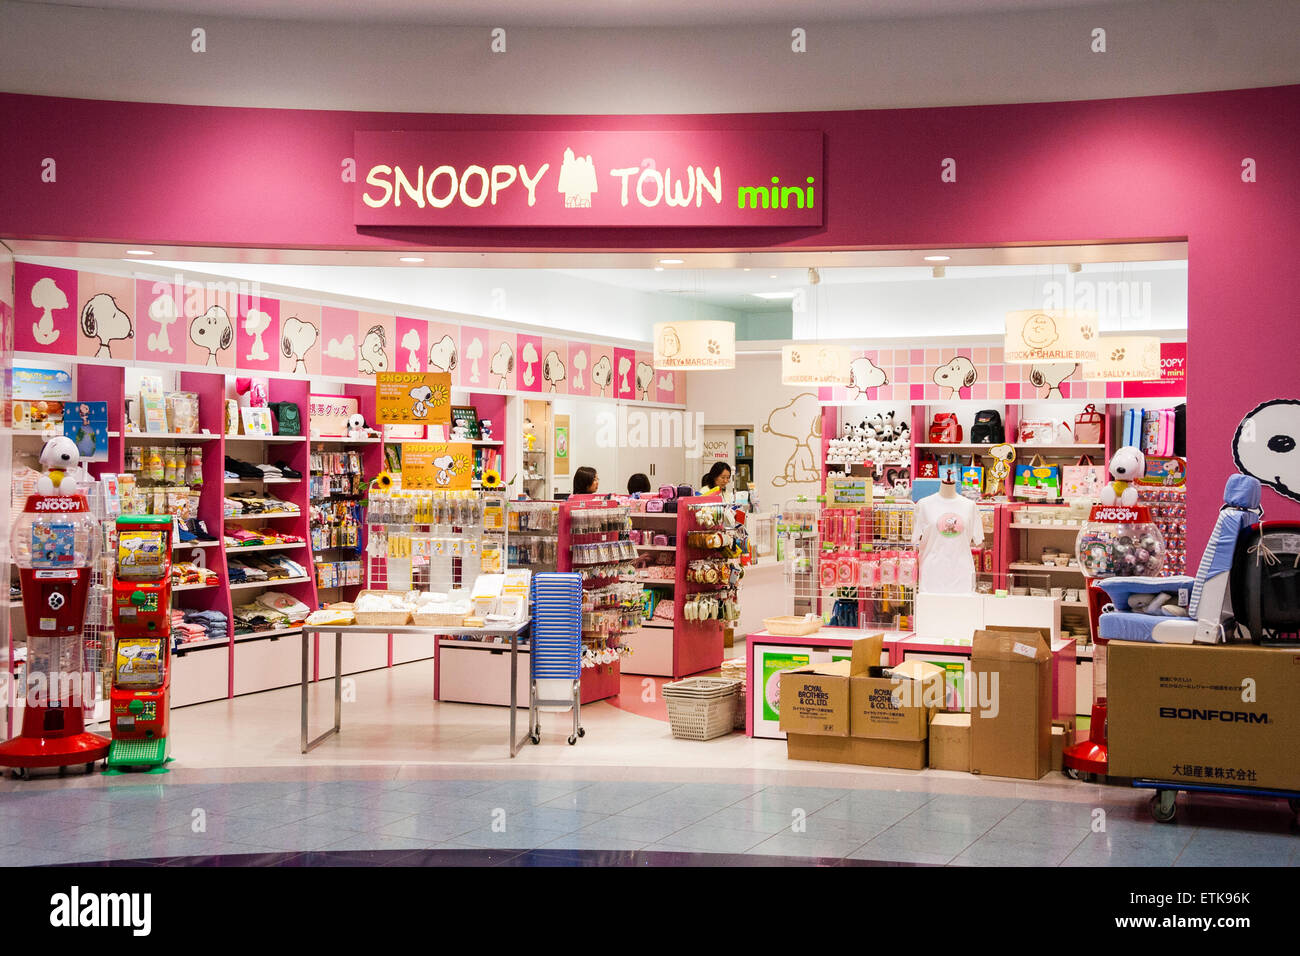 Snoopy Store. 7, likes · 54 talking about this · 10 were here. Clothing Store5/5(2).